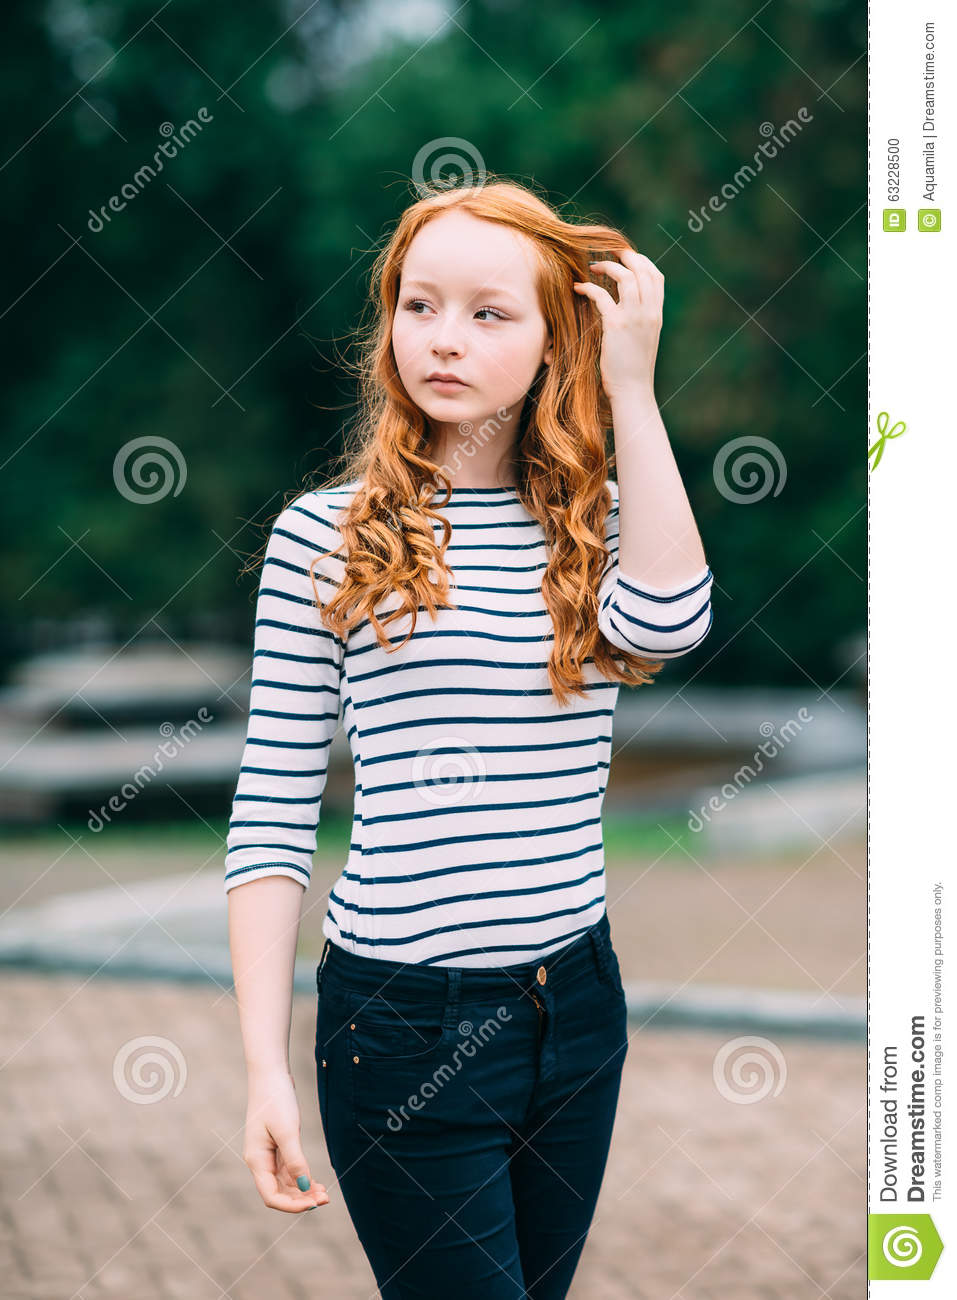 Consider, Young girl with red hair can